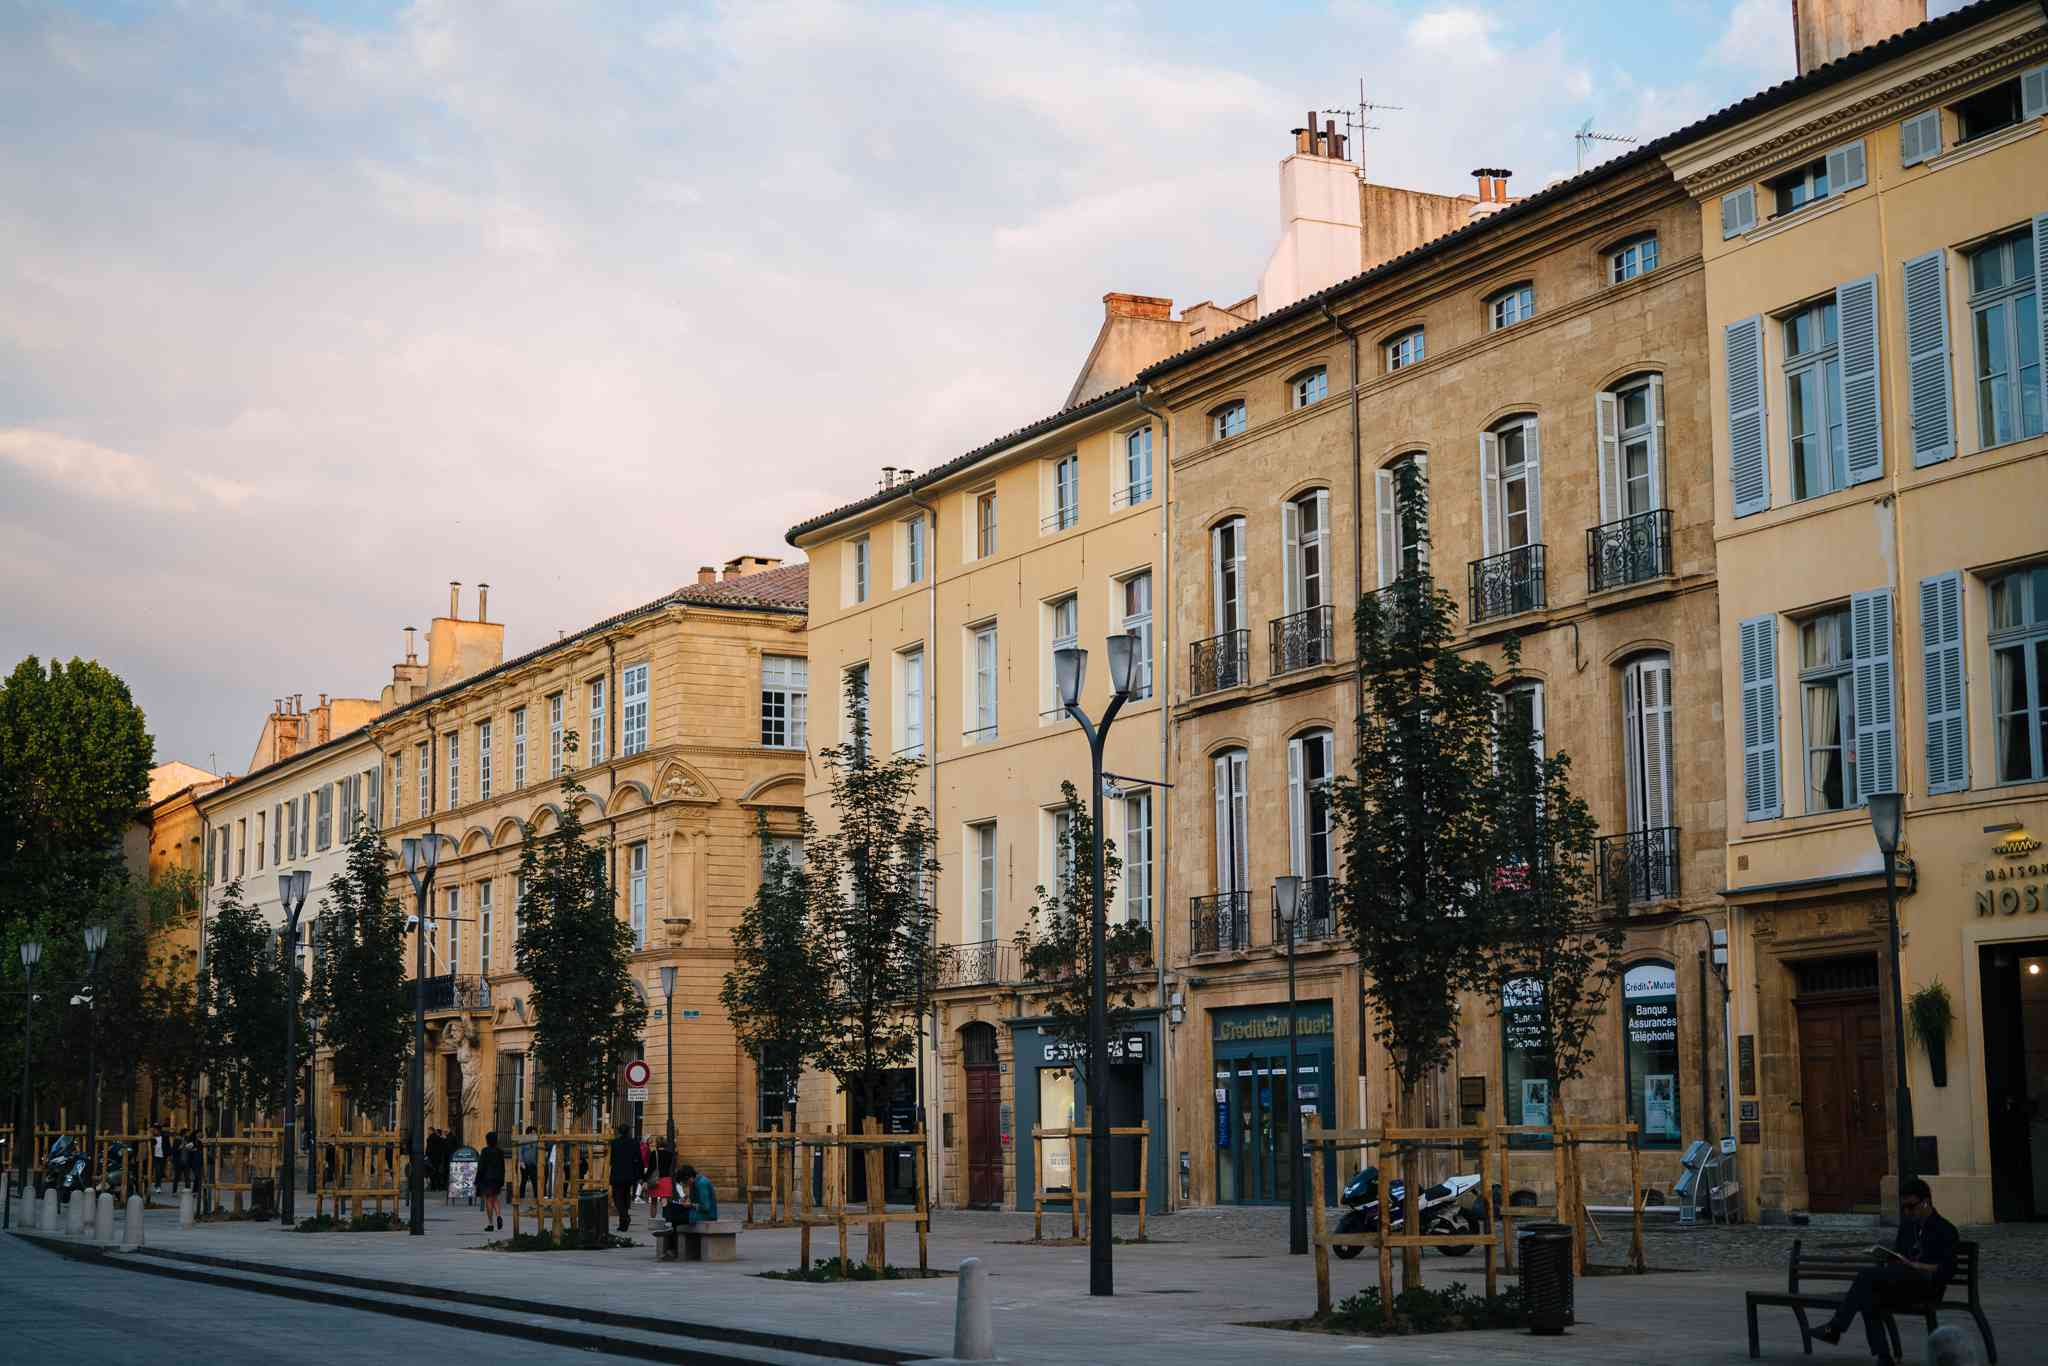 Old Town of Aix en Provence